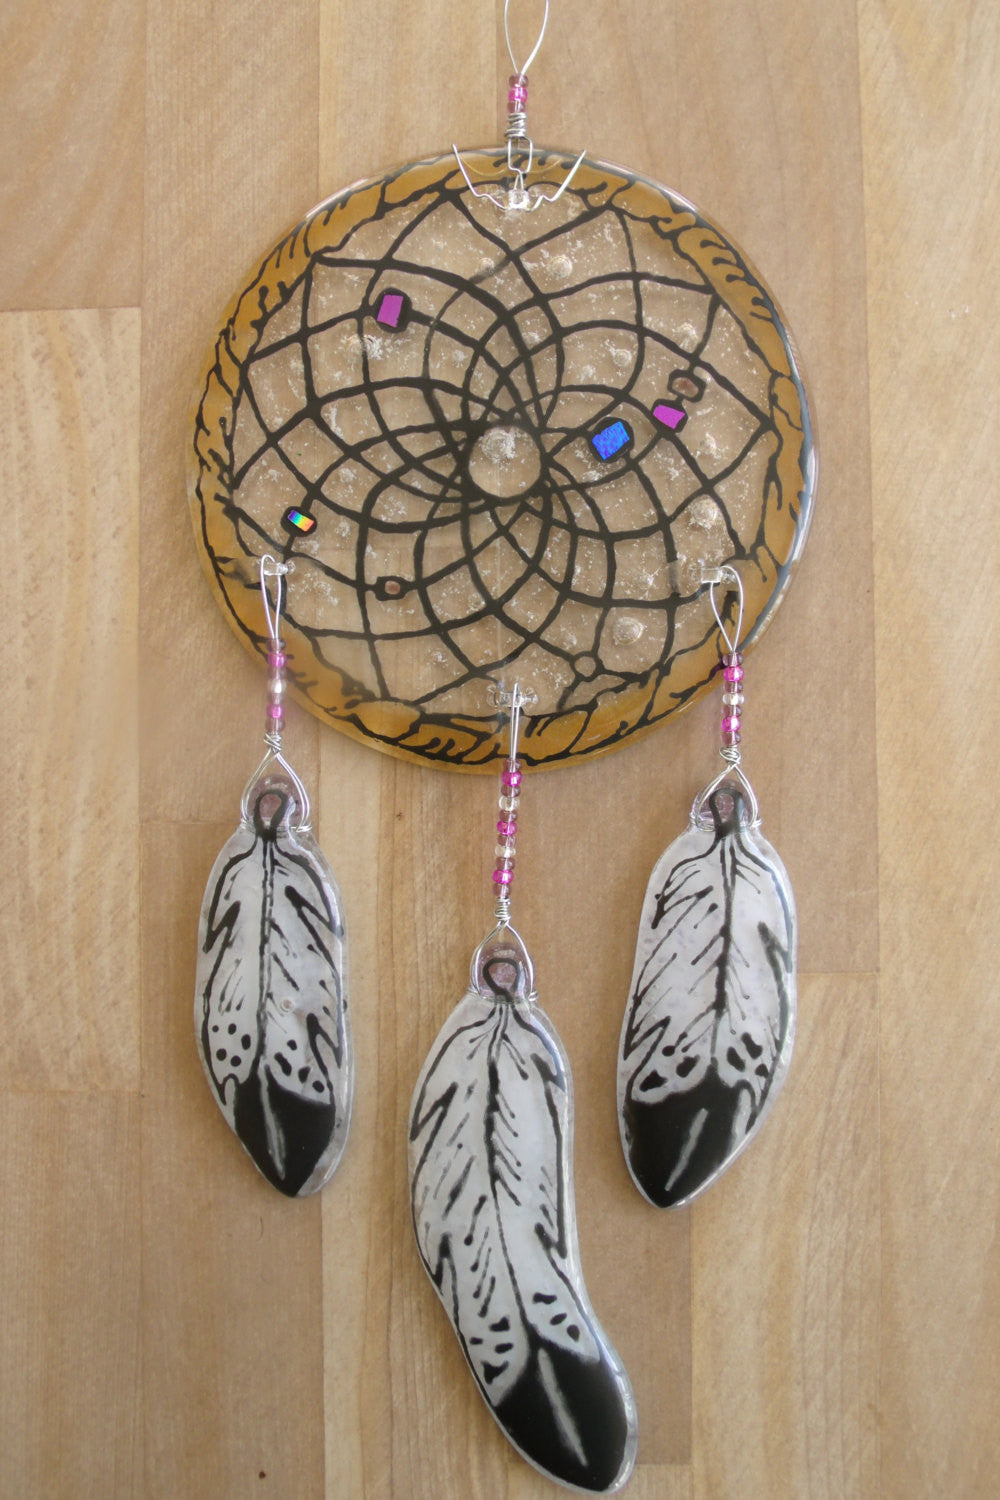 Cremation Memorial Sun Catcher Tags: cremation ashes glass art cremation ashes in glass cremation glass cremation memorial Cremation Memorial Sun Catcher Dream Catcher feather funeral glass dream catcher handmade human ashes memorial memorial glass memorial_art mourning native_american_art Spiritual urn